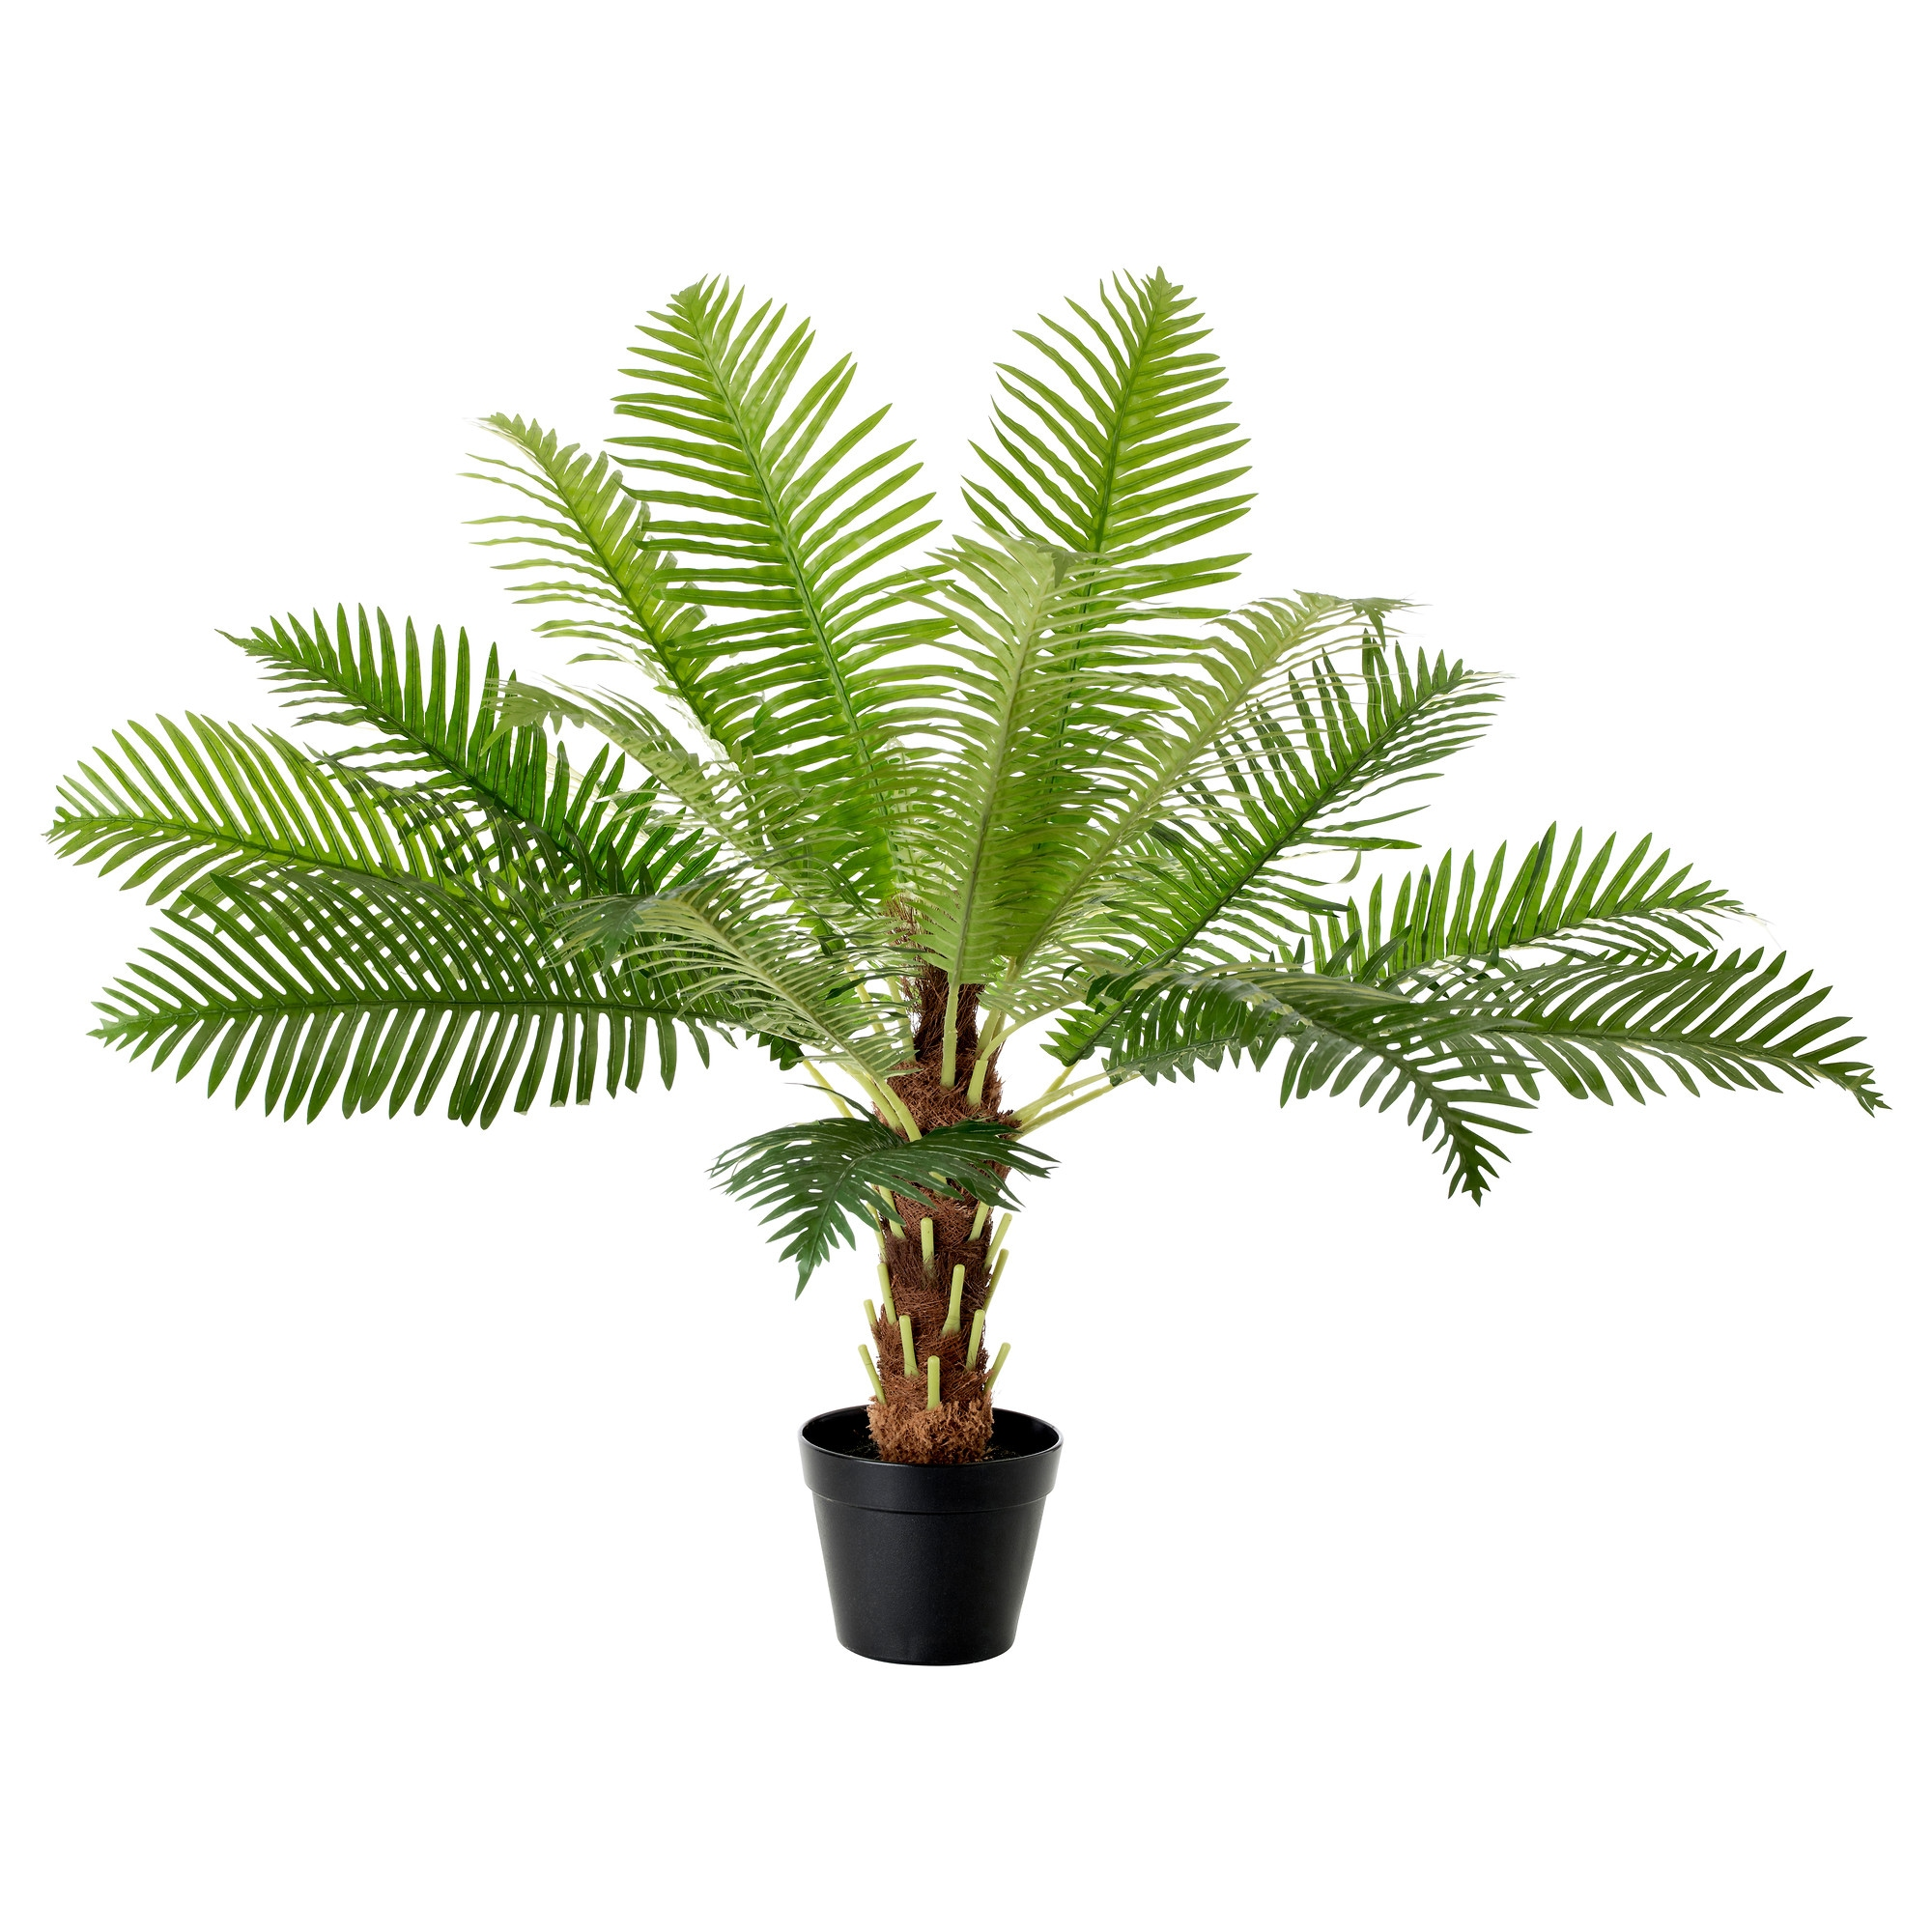 fejka artificial potted plant fern palm height 70 cm diameter of plant pot